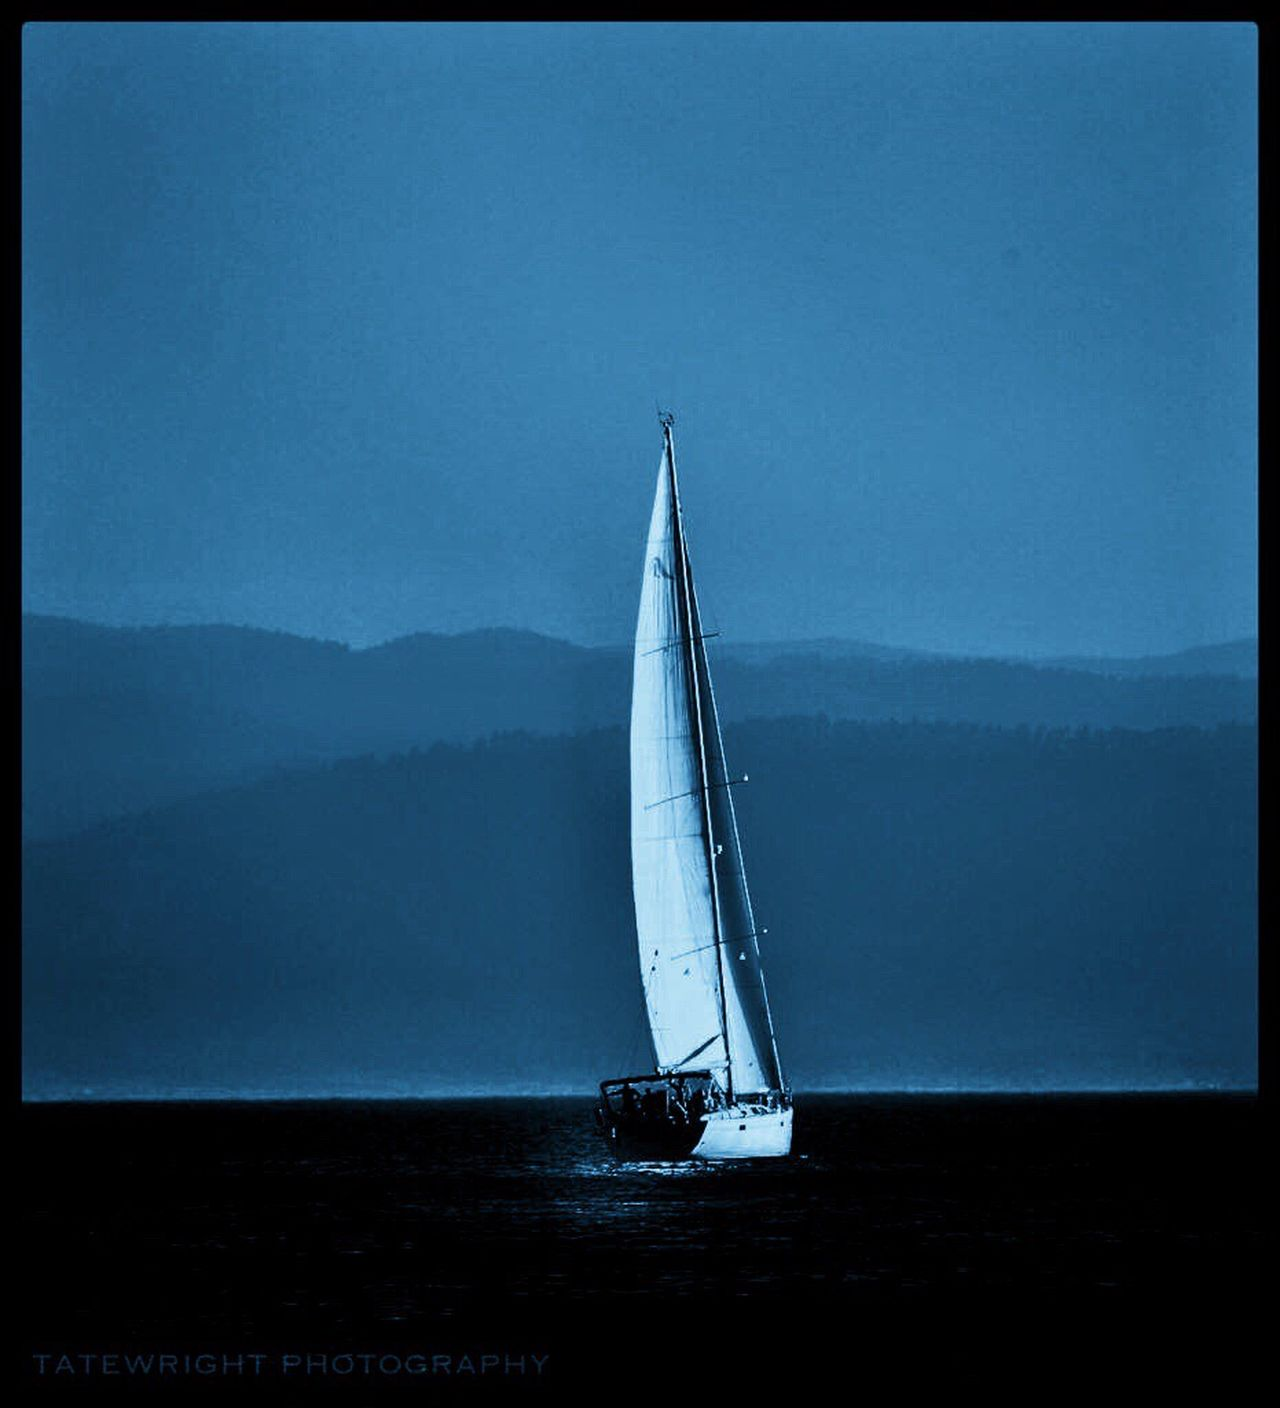 Sailing Boat Sailaway,sailaway Mountain Blue Sky Water Nautical Vessel Canvas Transportation Mountain Range Outdoors Clear Sky Scenics Nature Sea Tranquil Scene Vacations Landscape Sailing Day No People Beauty In Nature